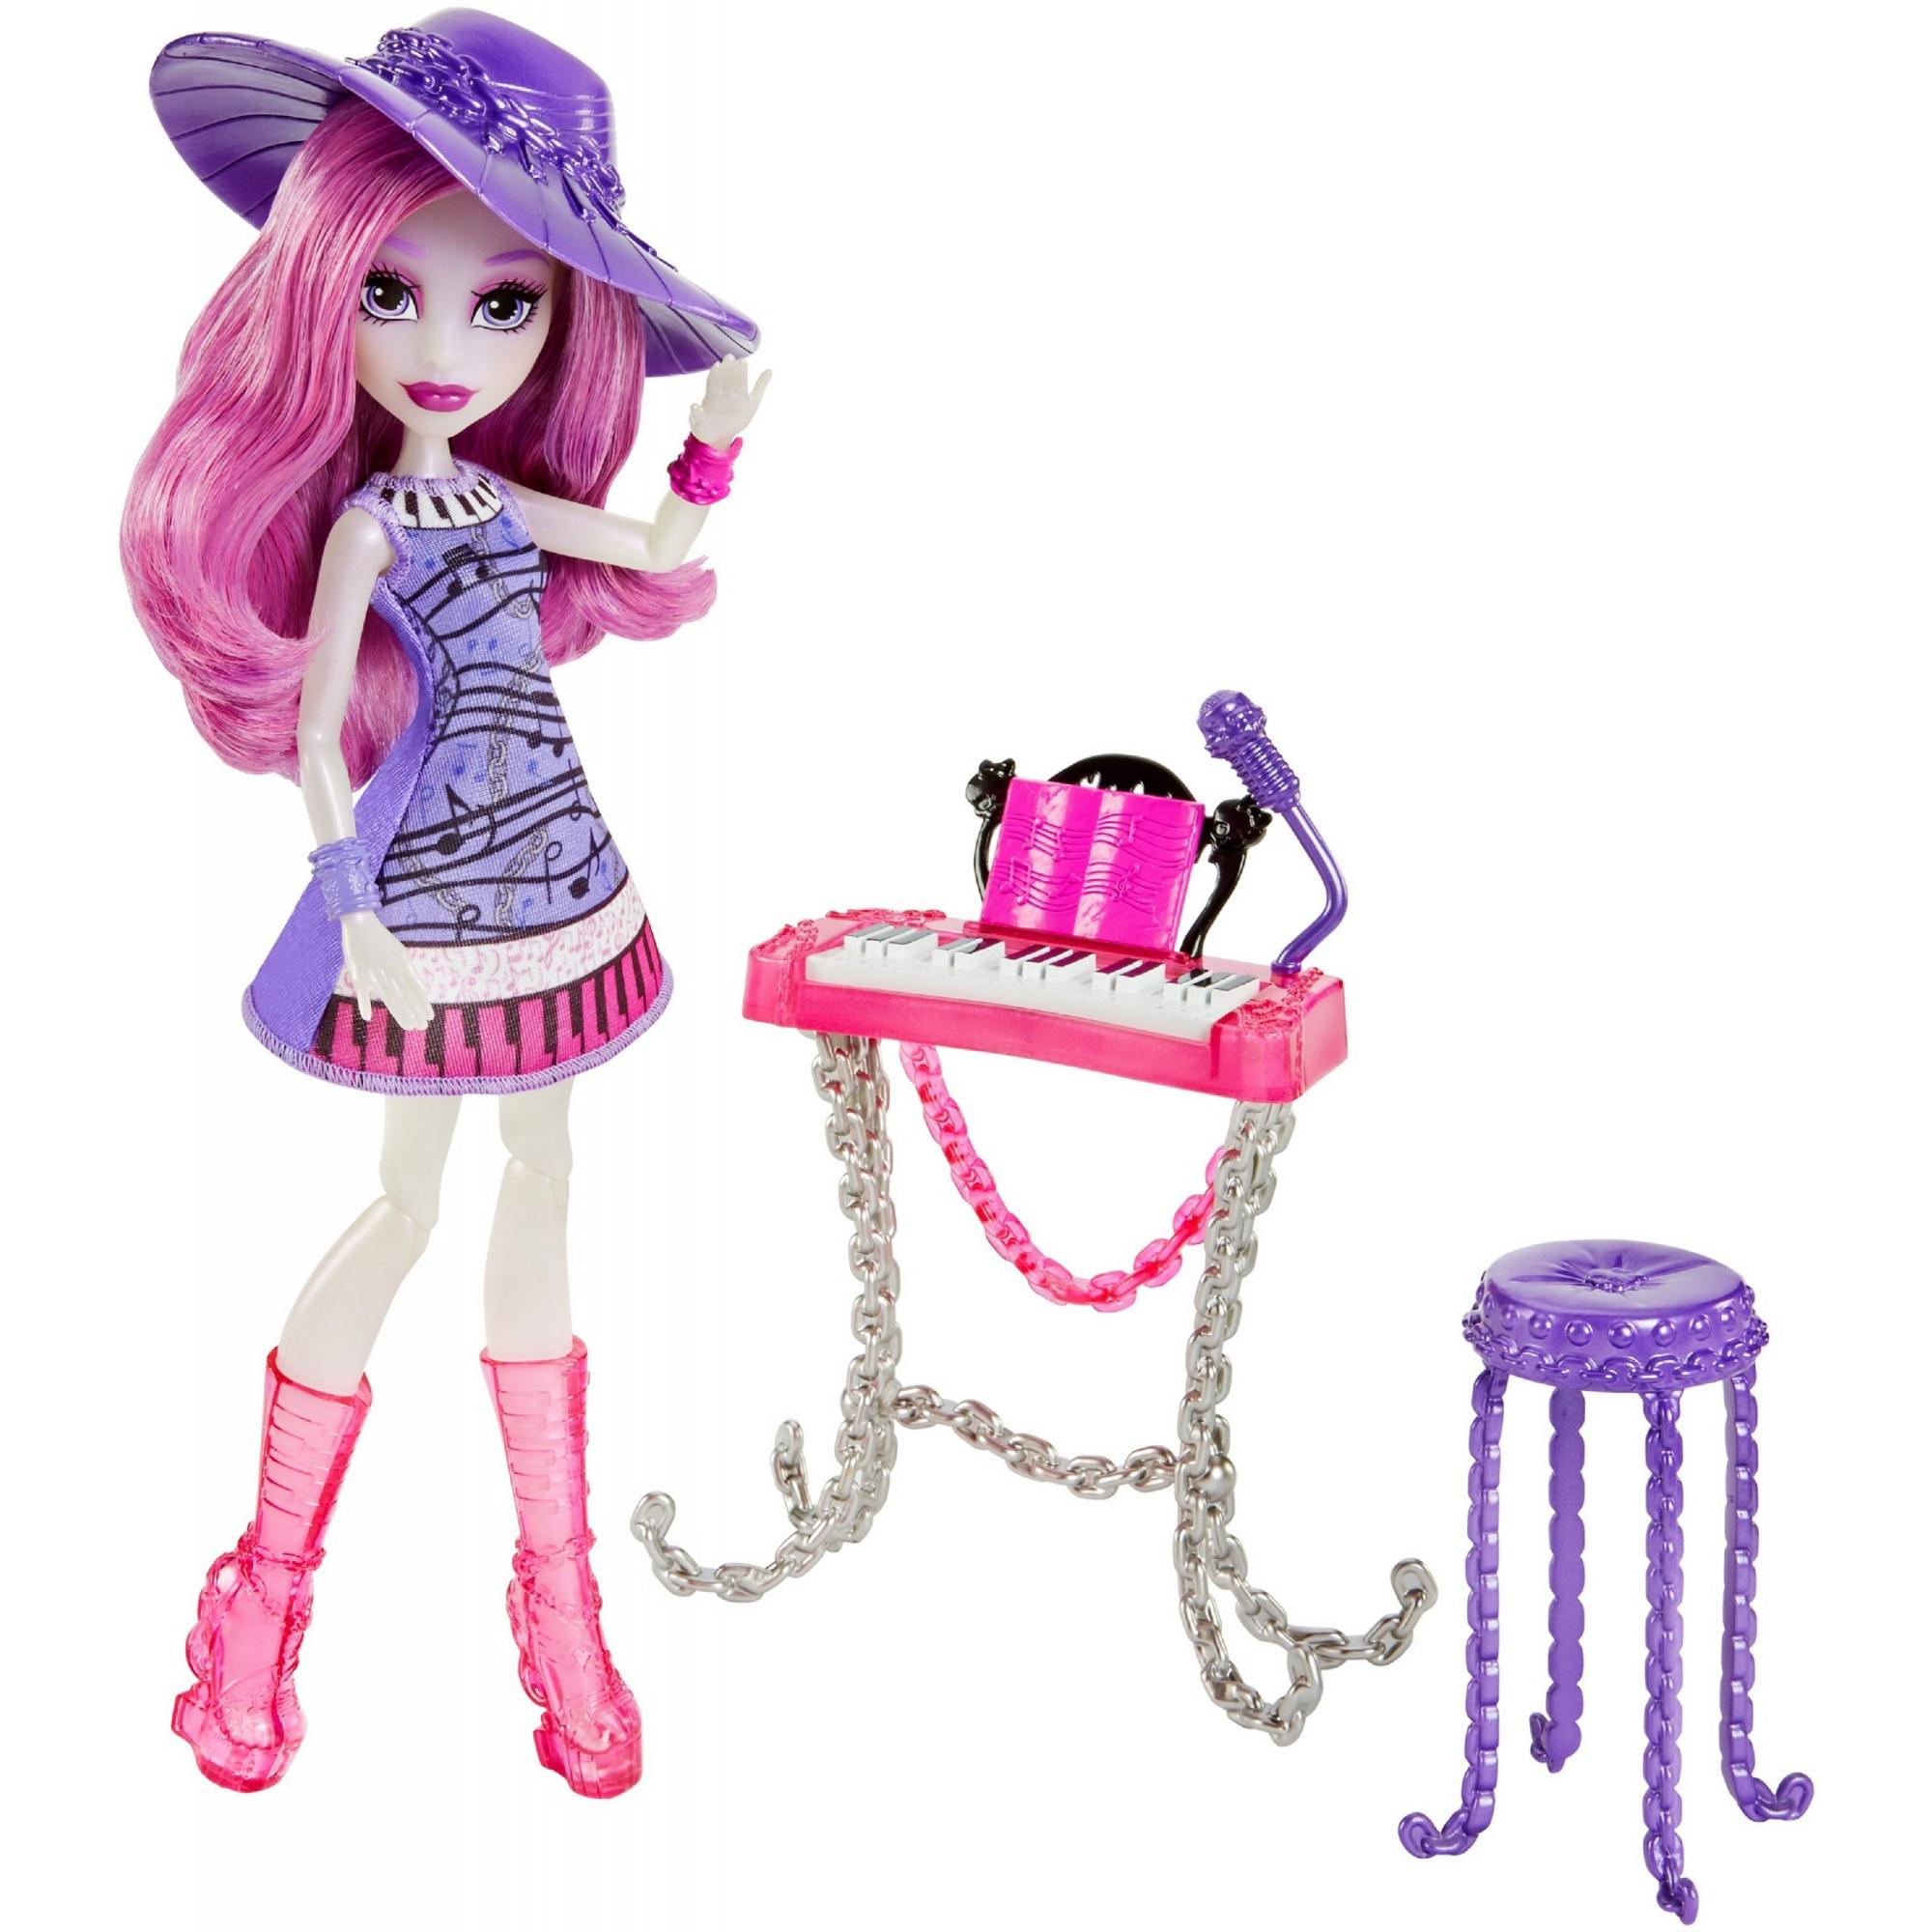 Monster High Ari Hauntington Doll & Accessory by Mattel